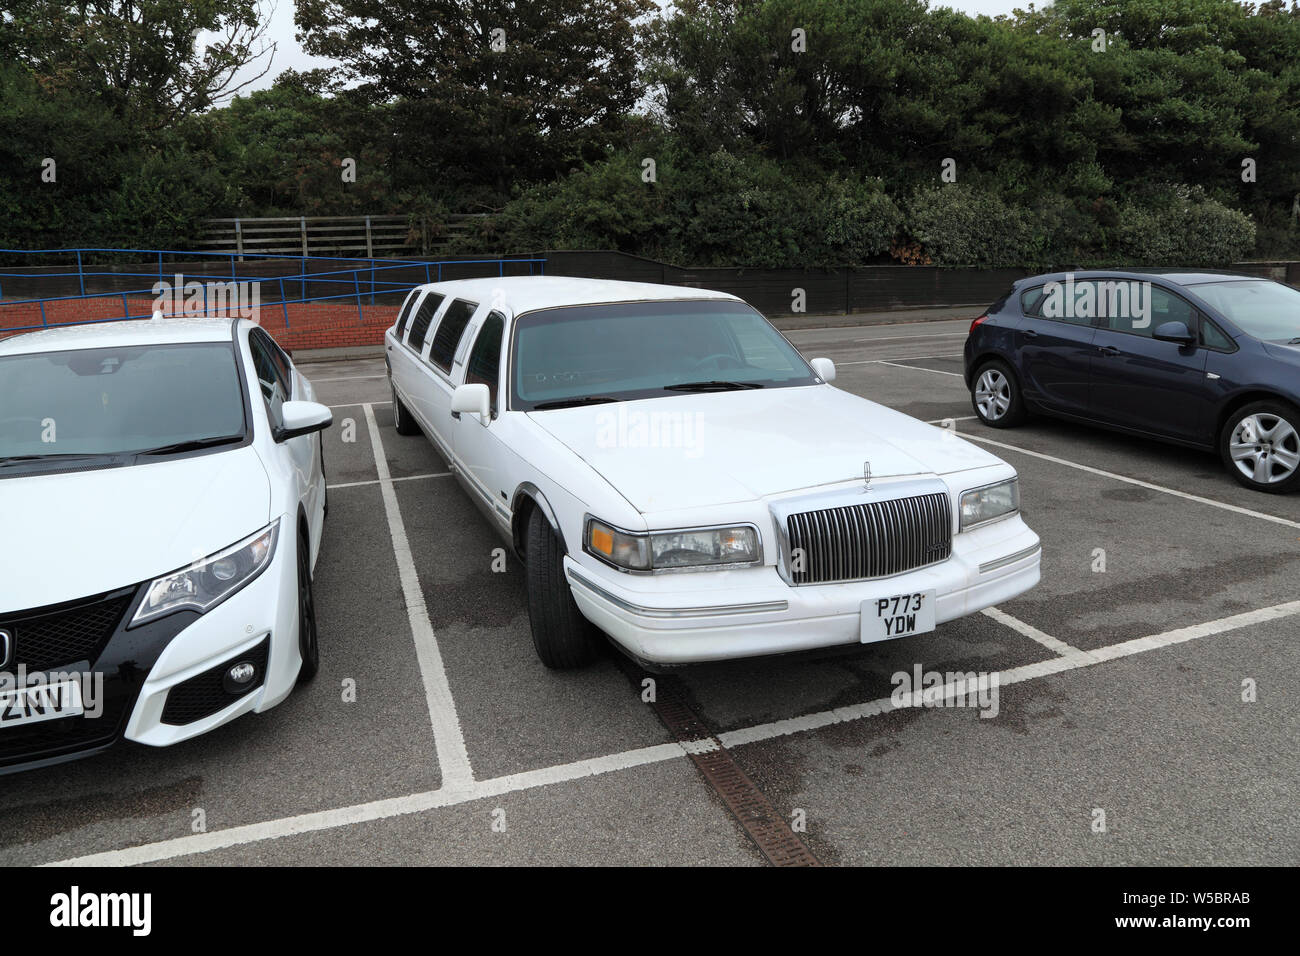 Stretch Limousine, Limo, Lincoln manufacture, car, vehicle, taking 2 bays, parking bays Stock Photo